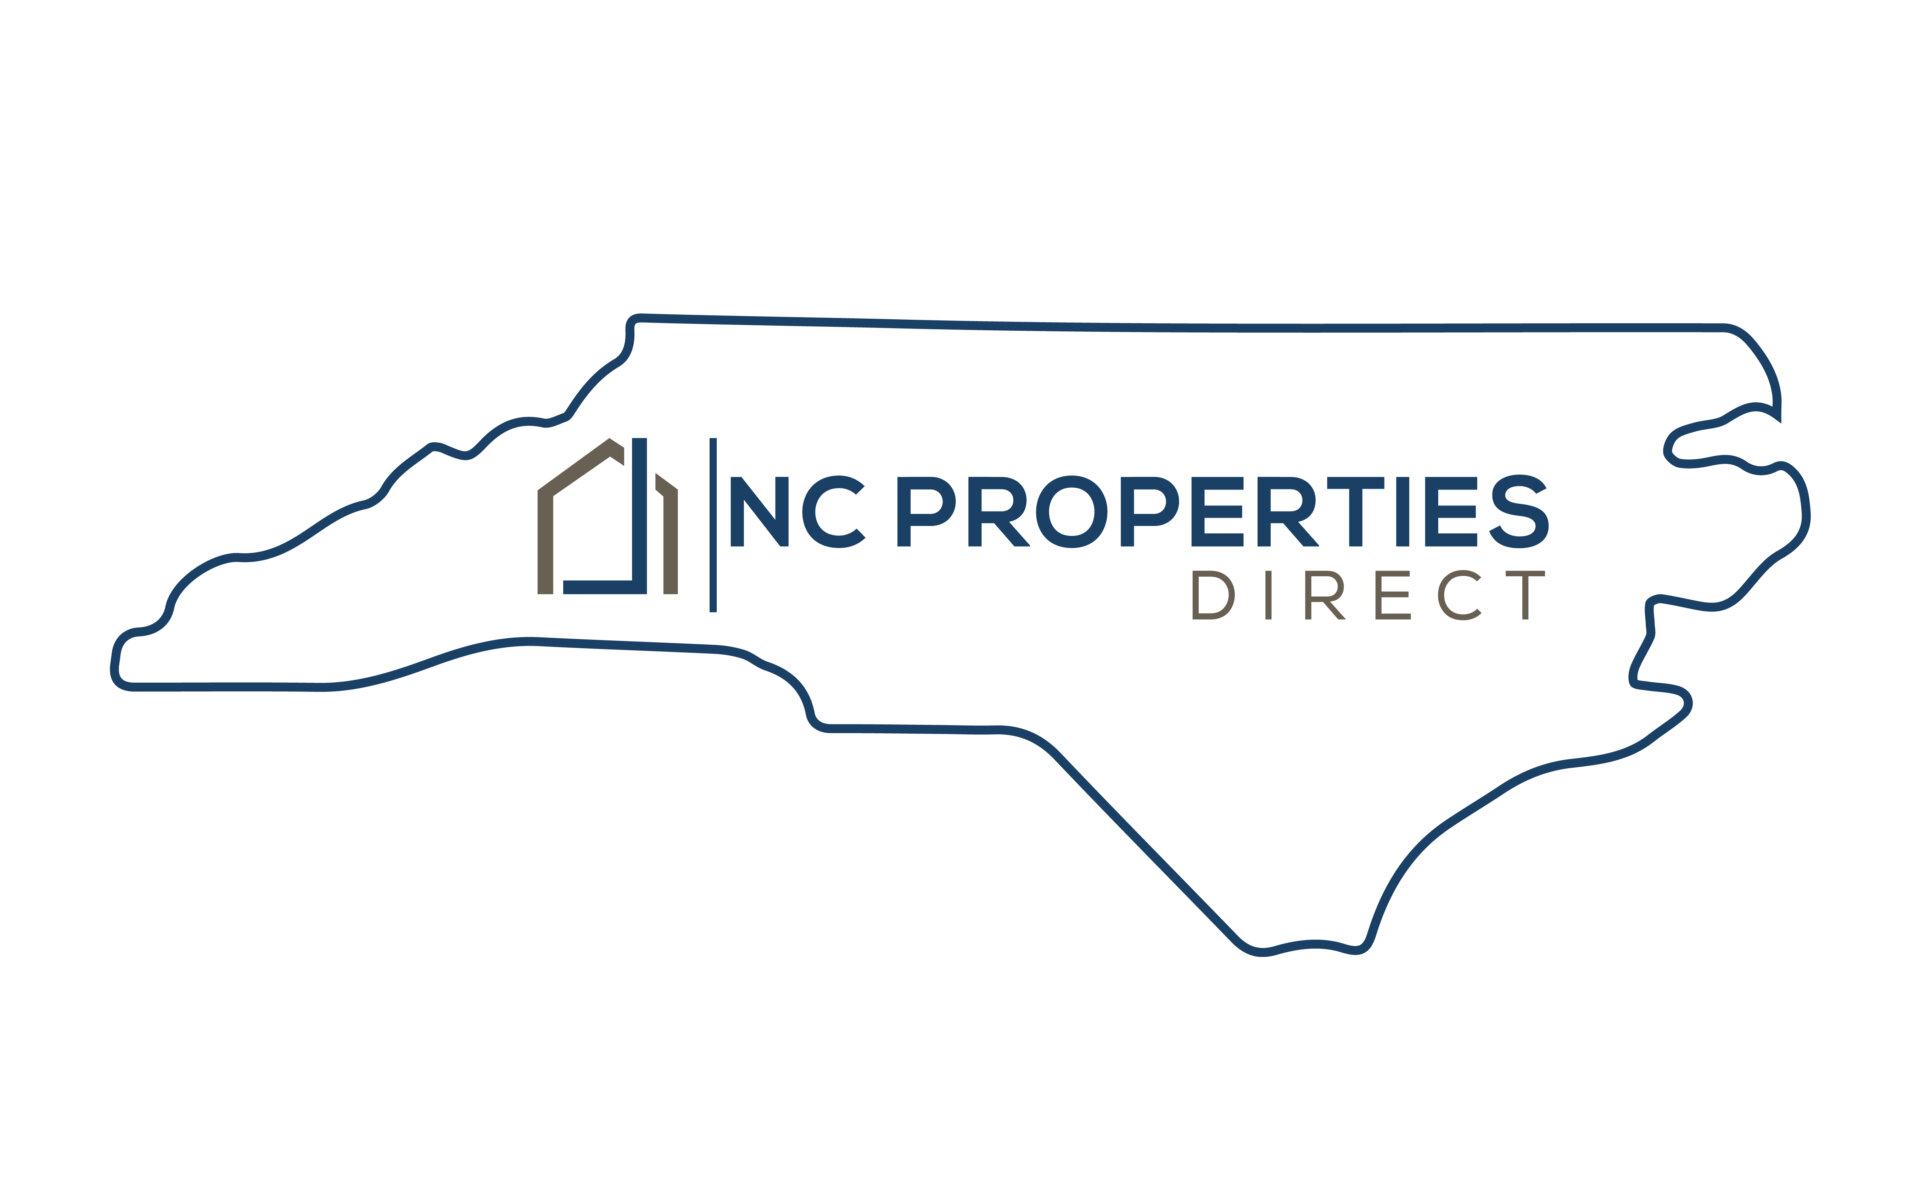 NC Properties Direct logo